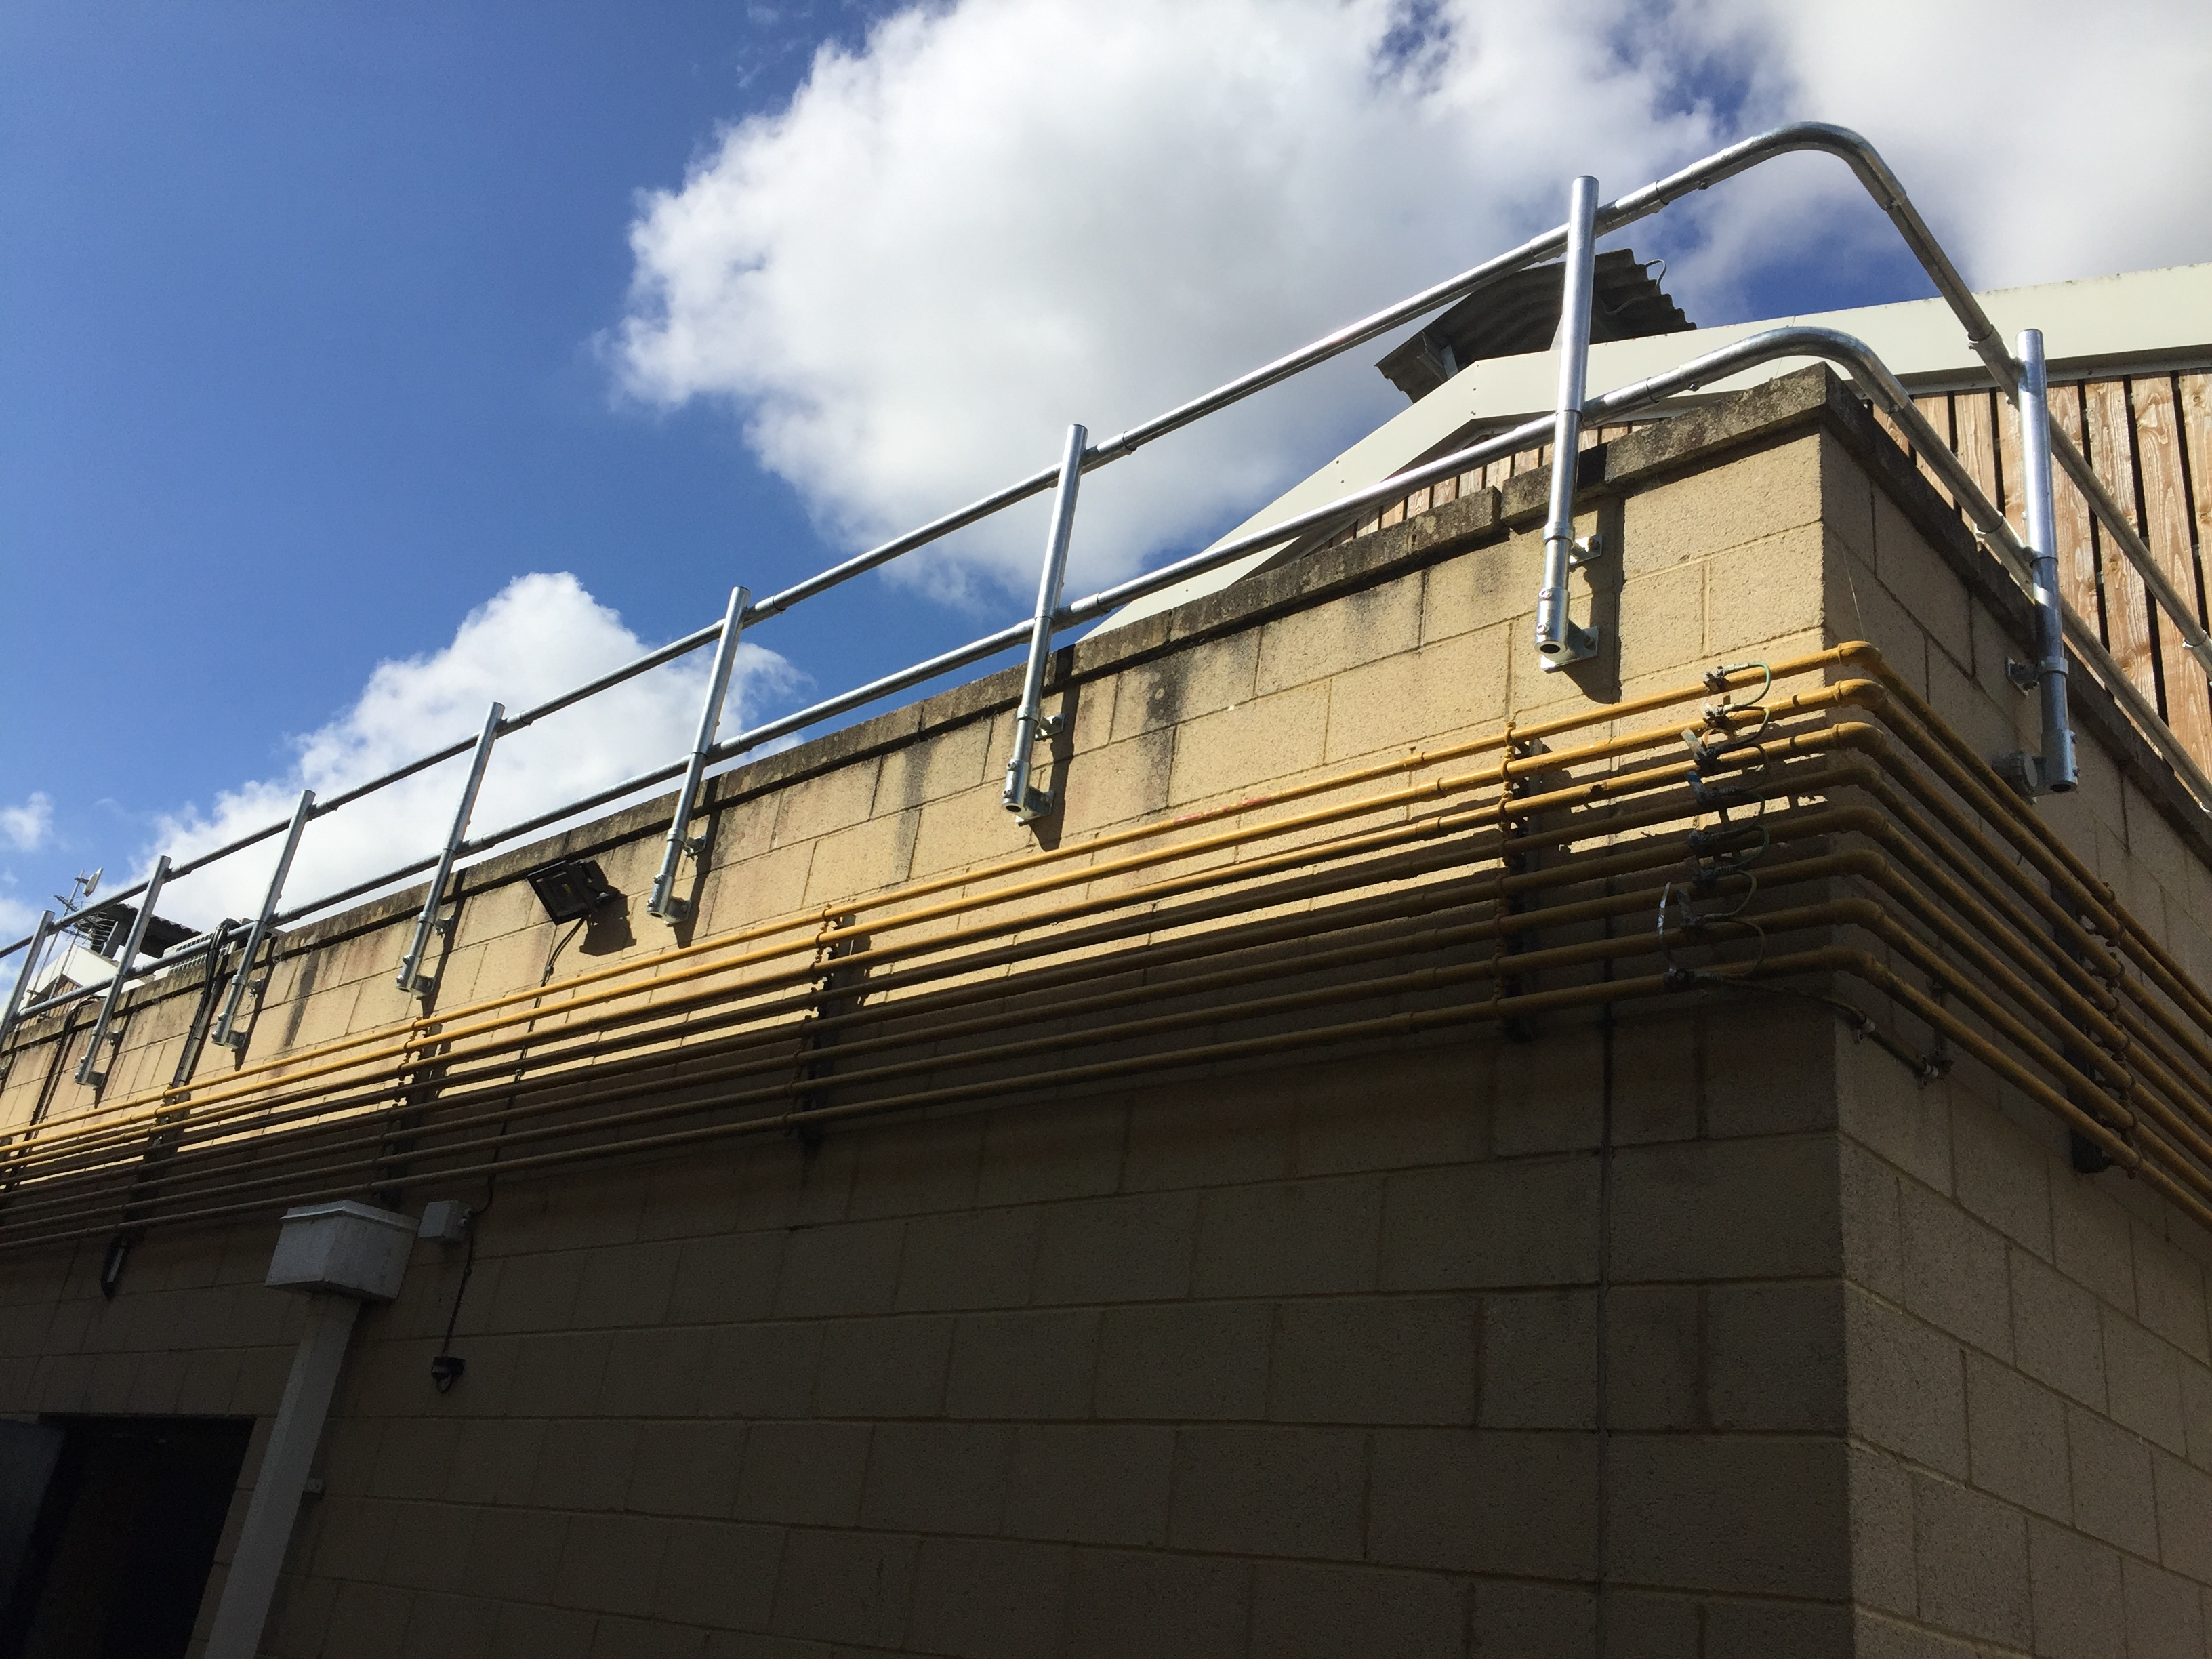 Fixed Parapet Handrails & Guardrails for Fixed Edge Protection